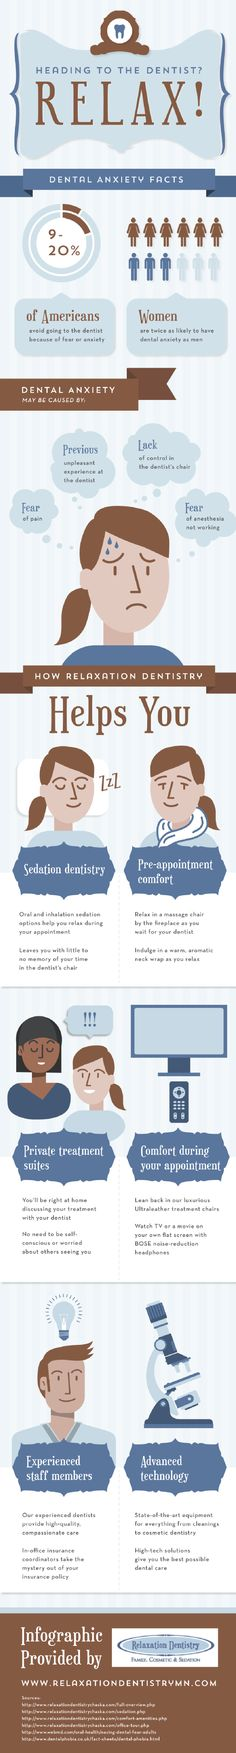 Sedation dentistry leaves patients with little to no memory of their time in the dentist's chair. This option is great for patients who suffer from dental phobia before their appointments. Take a look at this dental anxiety infographic for more facts. Dental Sedation, Sedation Dentistry, Dental Health, Dental Care, Dental Fun Facts, Dental Phobia, Dental World, Banners, Remedies For Tooth Ache